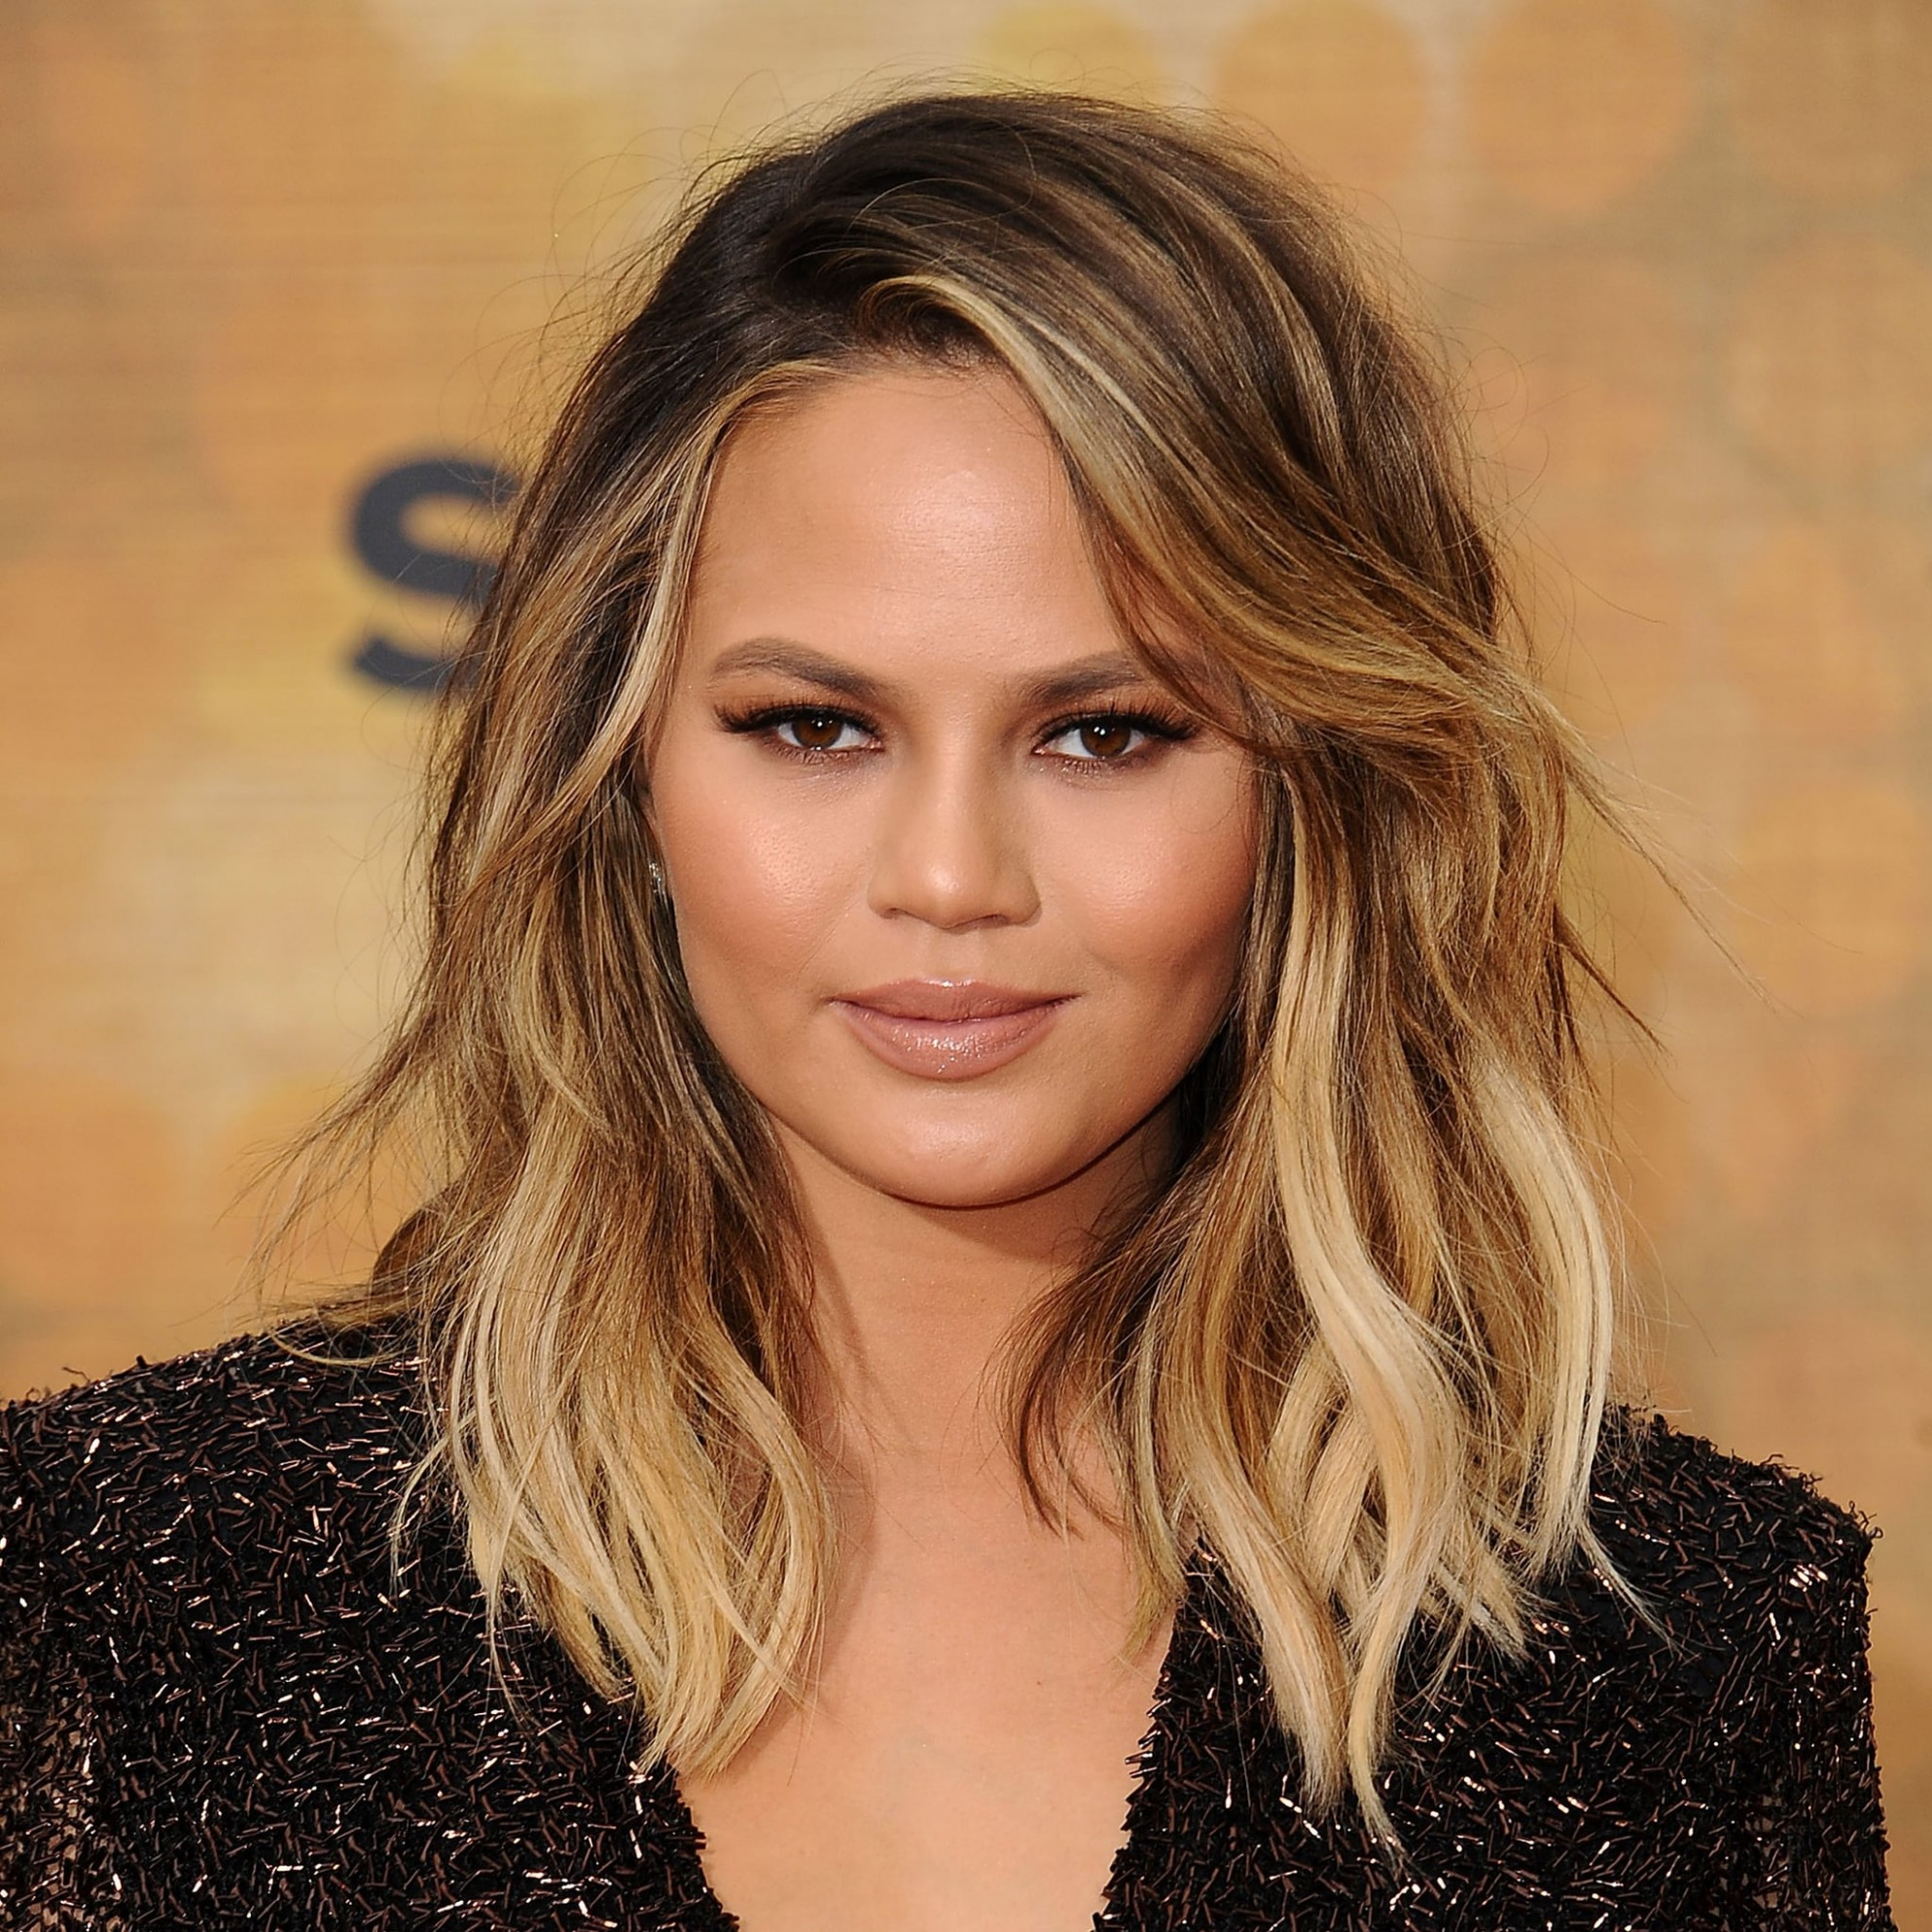 Best Haircuts For Round Faces, According To A Hairstylist Best Haircut For Round Face